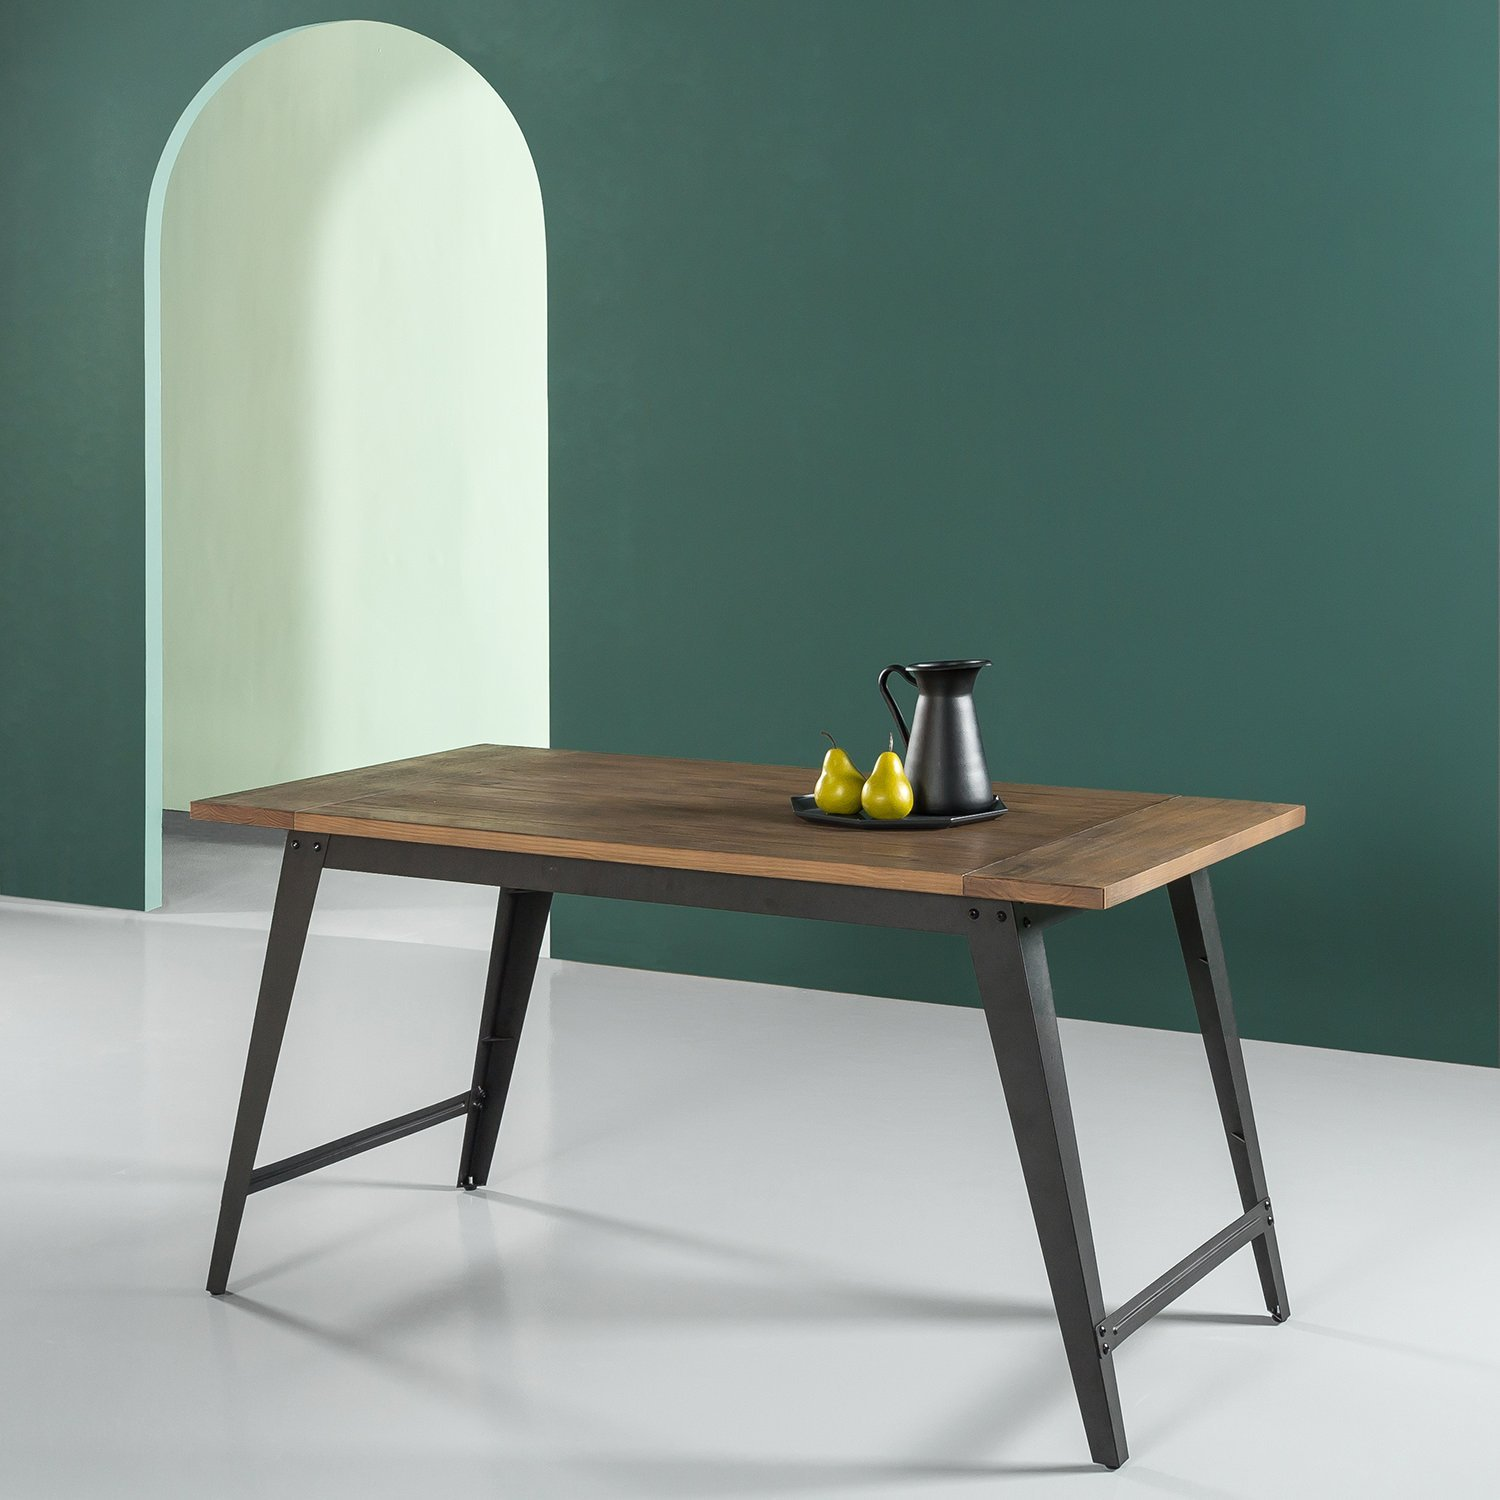 Zinus Donna Wood and Metal Dining Table by Zinus (Image #1)